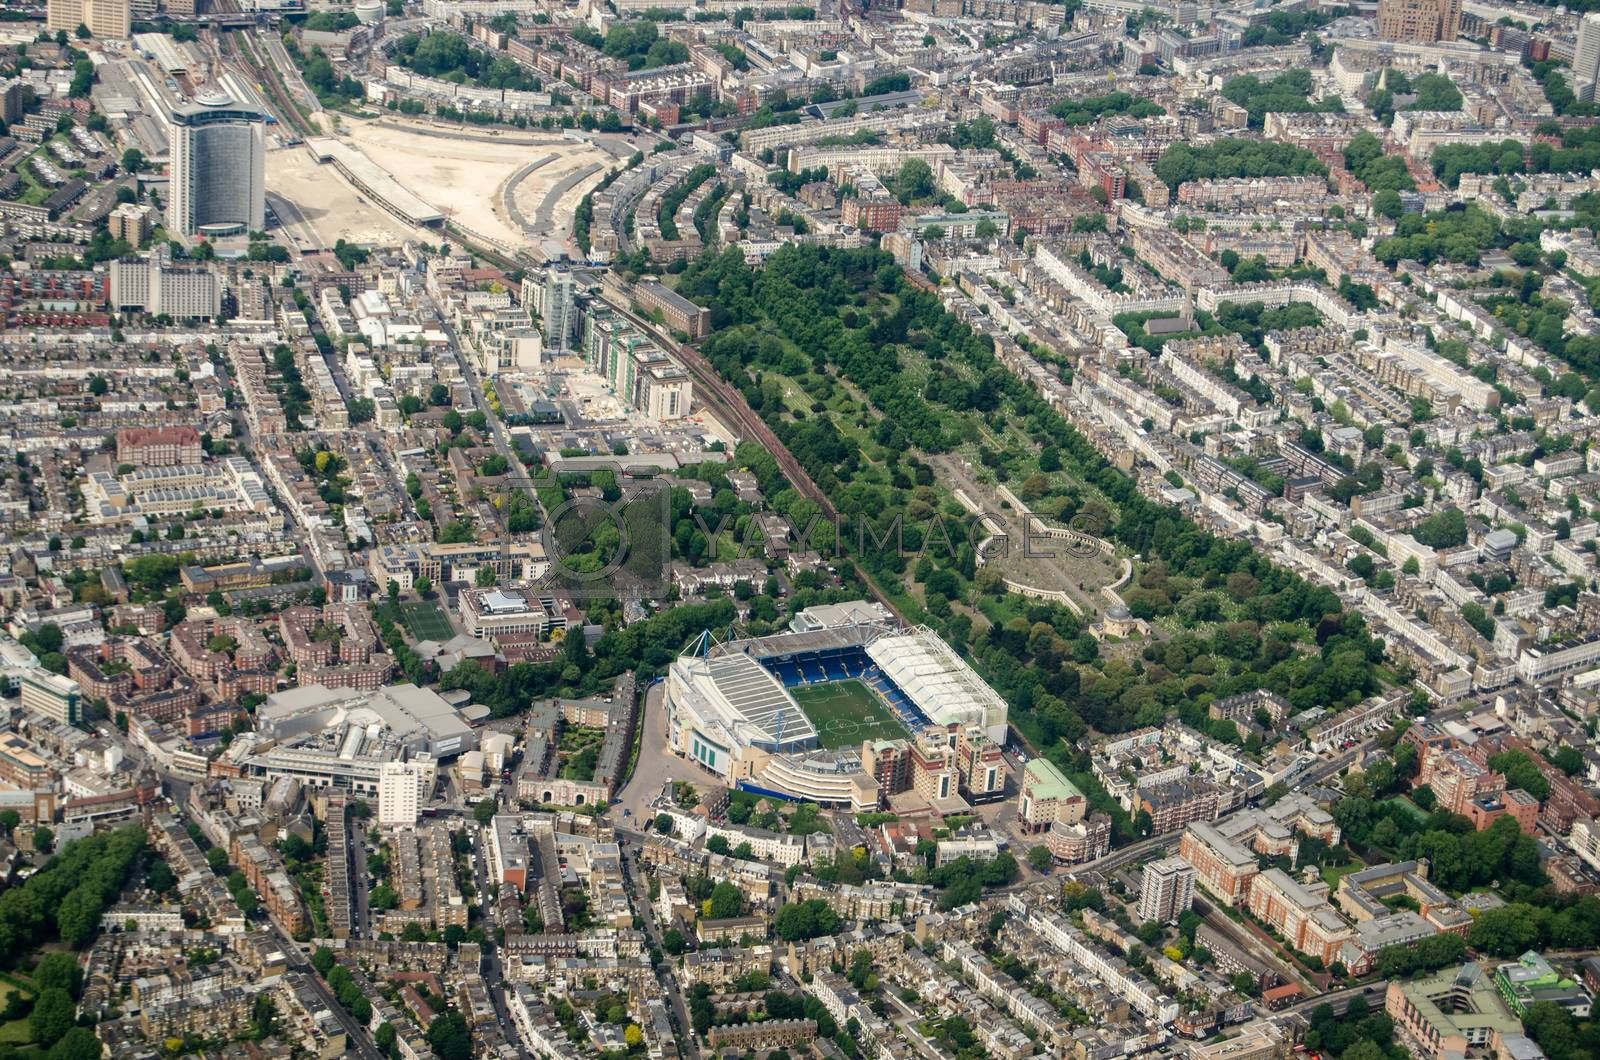 Aerial view looking north across Chelsea and Earls Court with the Stamford Bridge Stadium - home to Chelsea Football Club and Brompton Cemetary in the middle.  Top left is the Empress State Bilding and site of the former Earls Court exhibition halls.